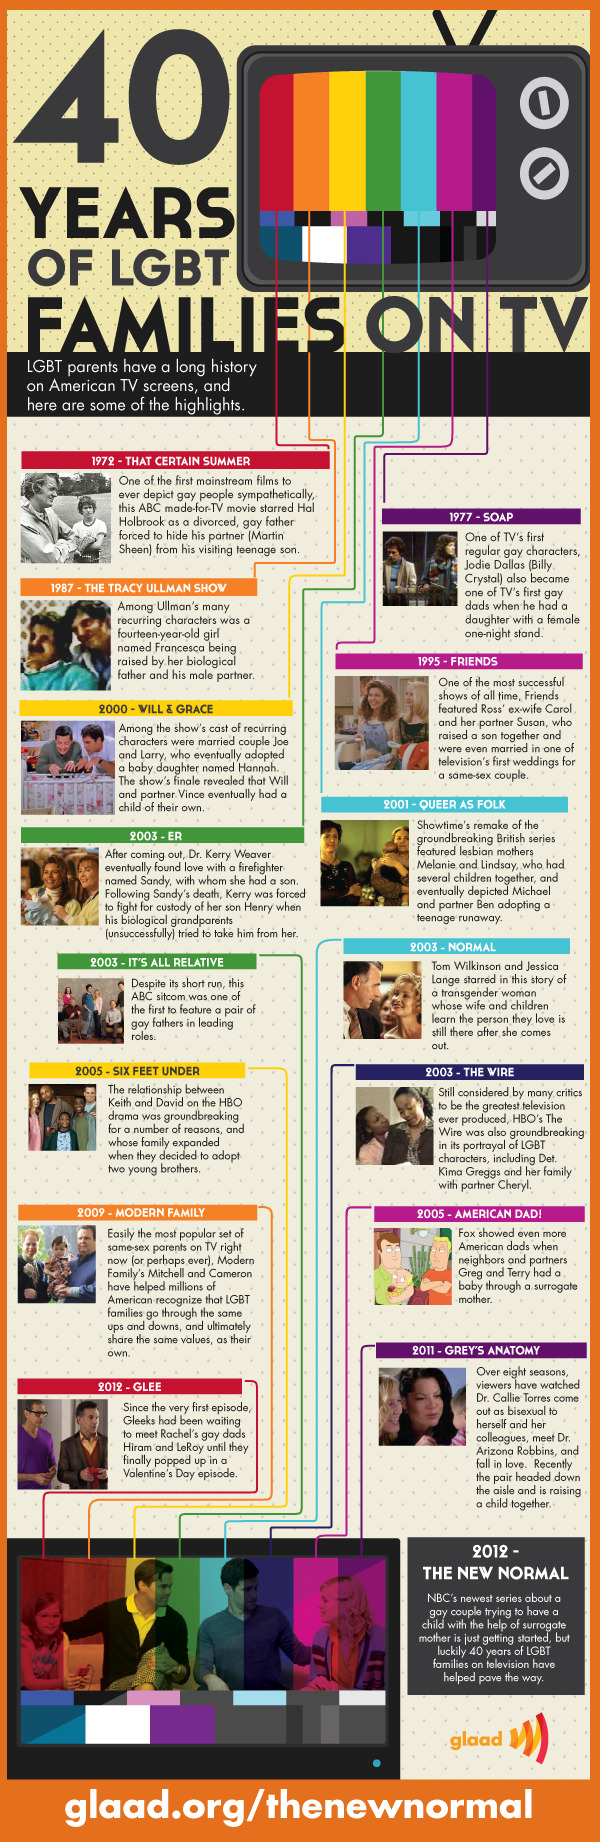 Infographic GLAAD 40 Years of LGBT Families on TV